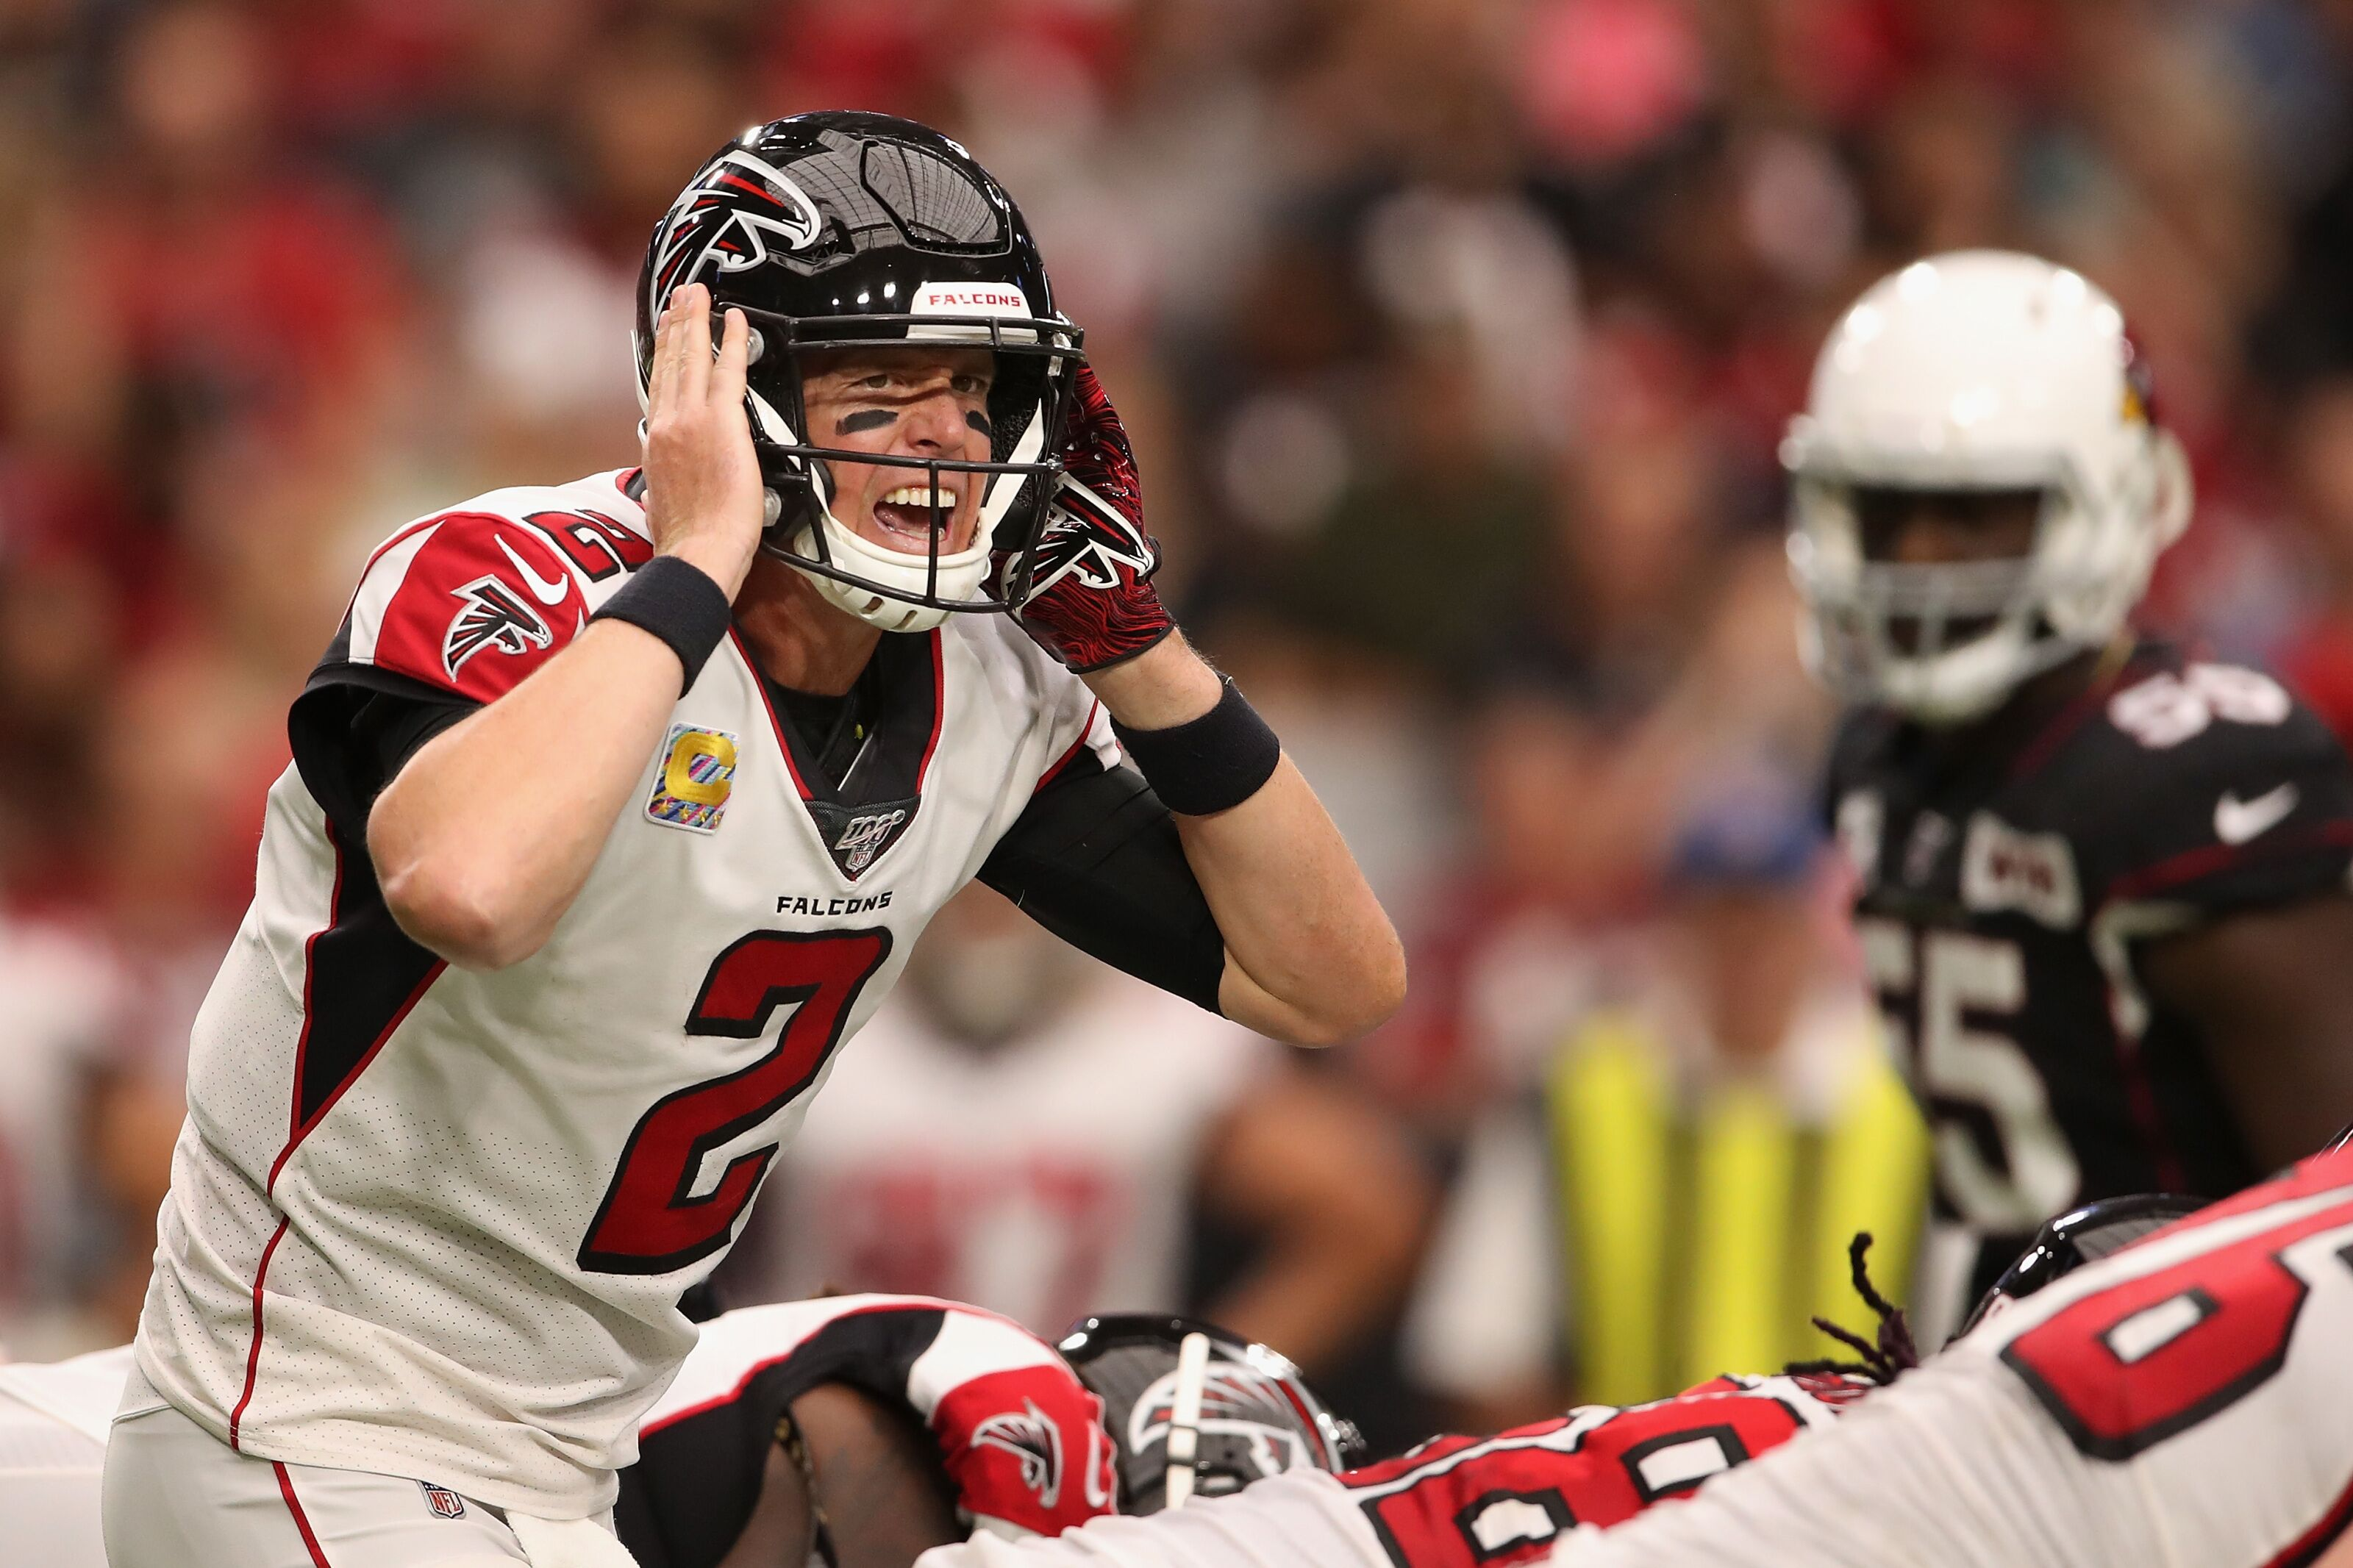 Falcons vs Rams: Betting odds, injuries, fantasy football outlook